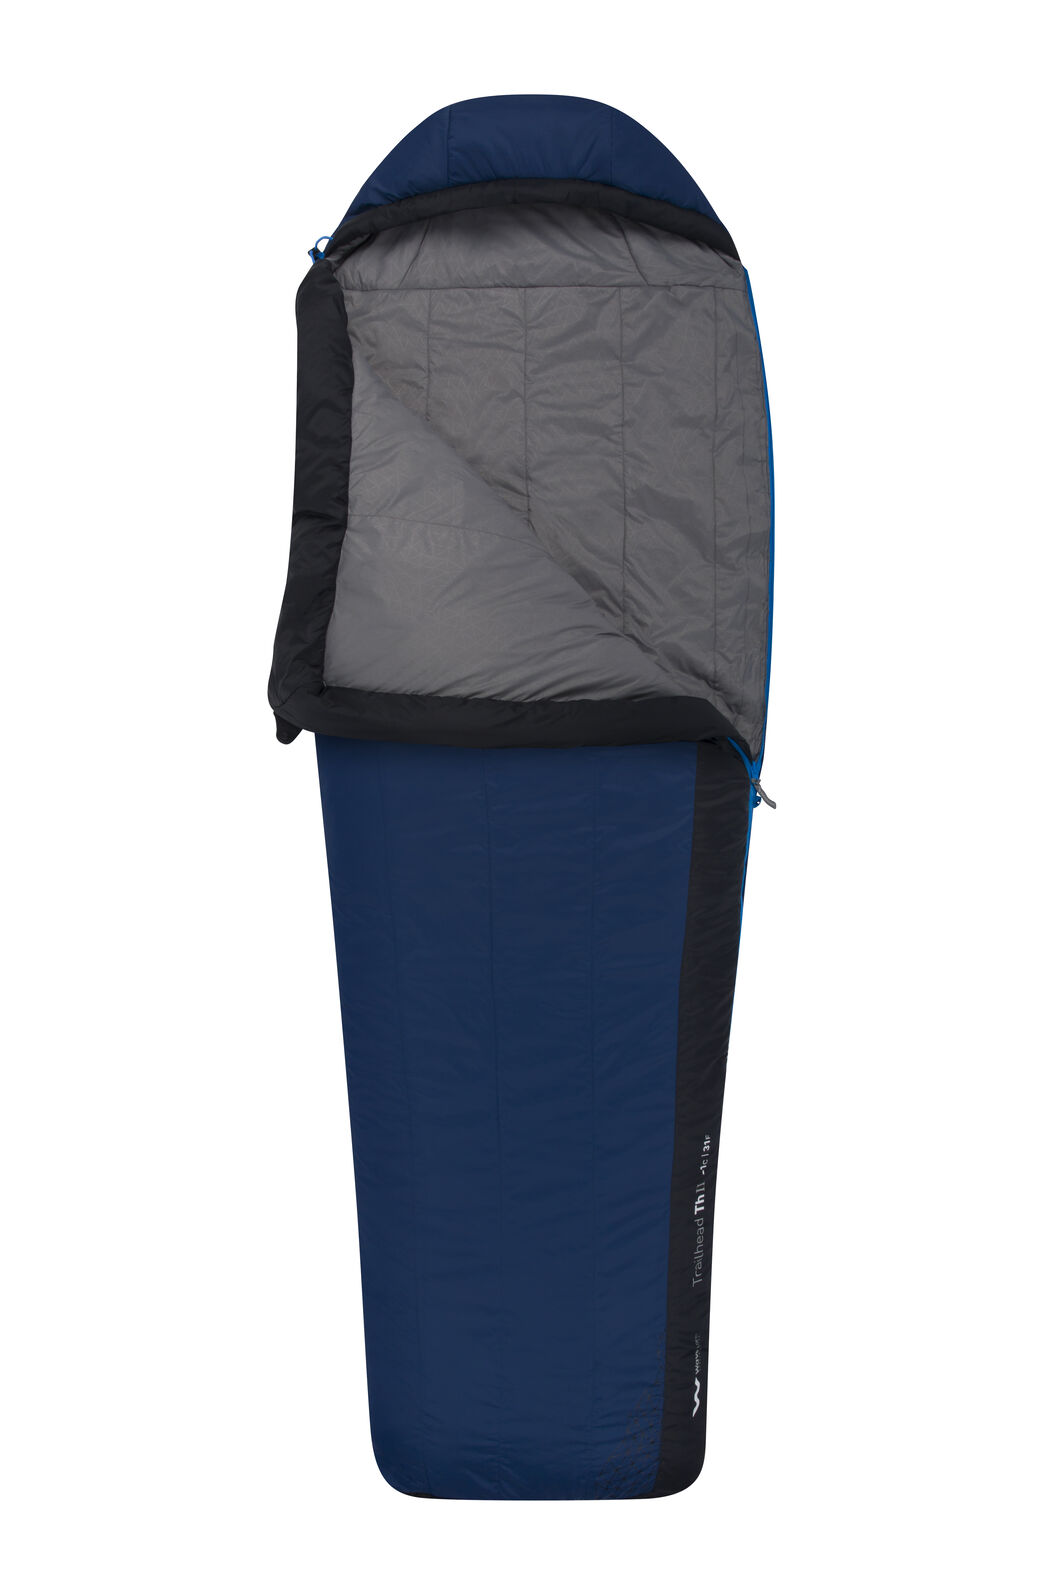 Sea to Summit Trailhead II Sleeping Bag - Regular, Dark Blue, hi-res